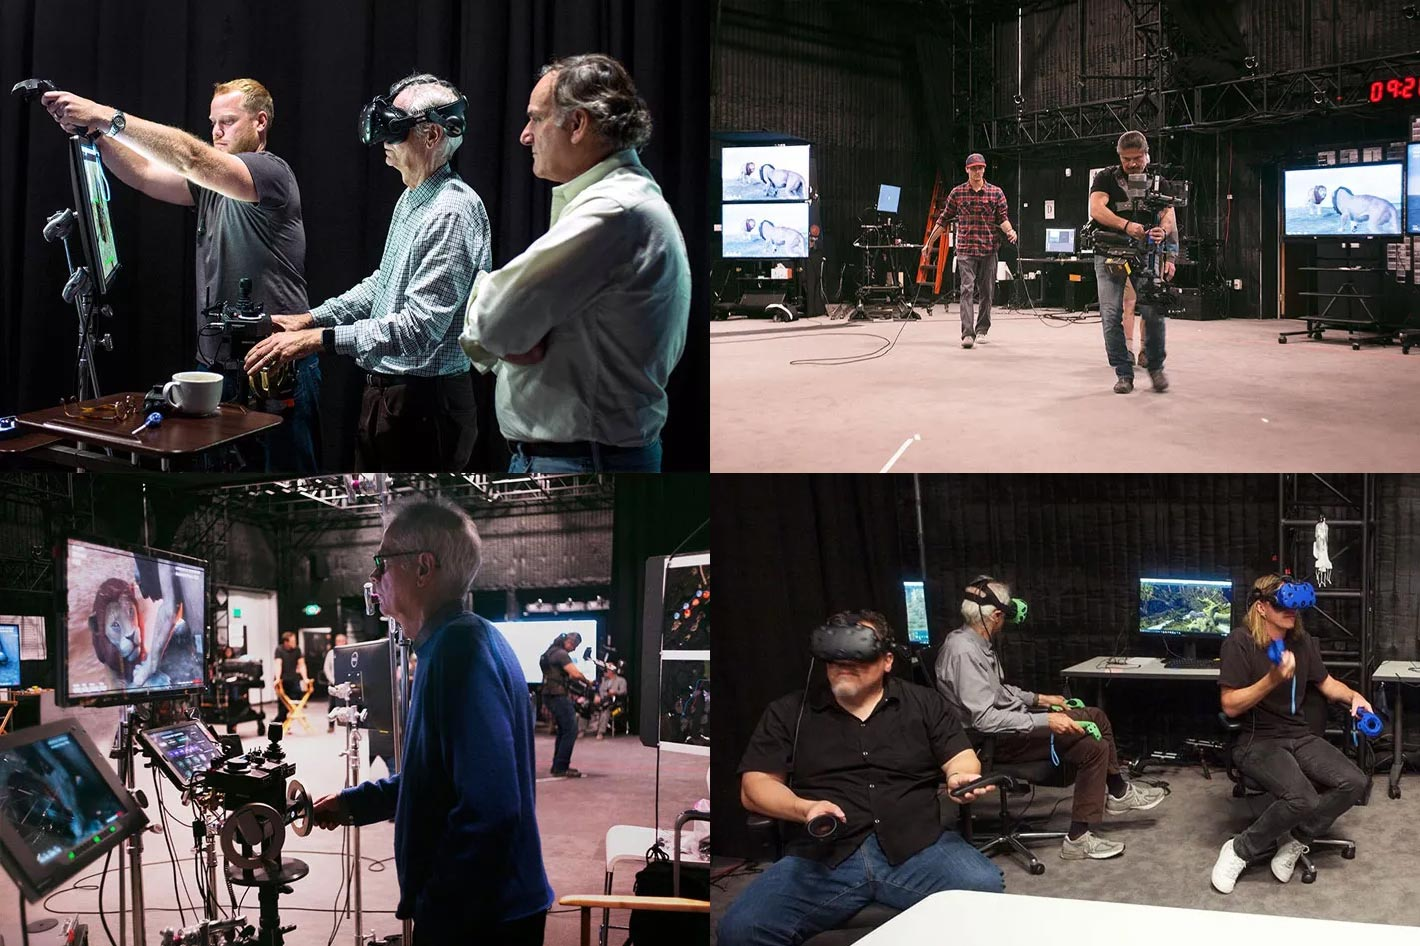 How game engines and VR are changing filmmaking